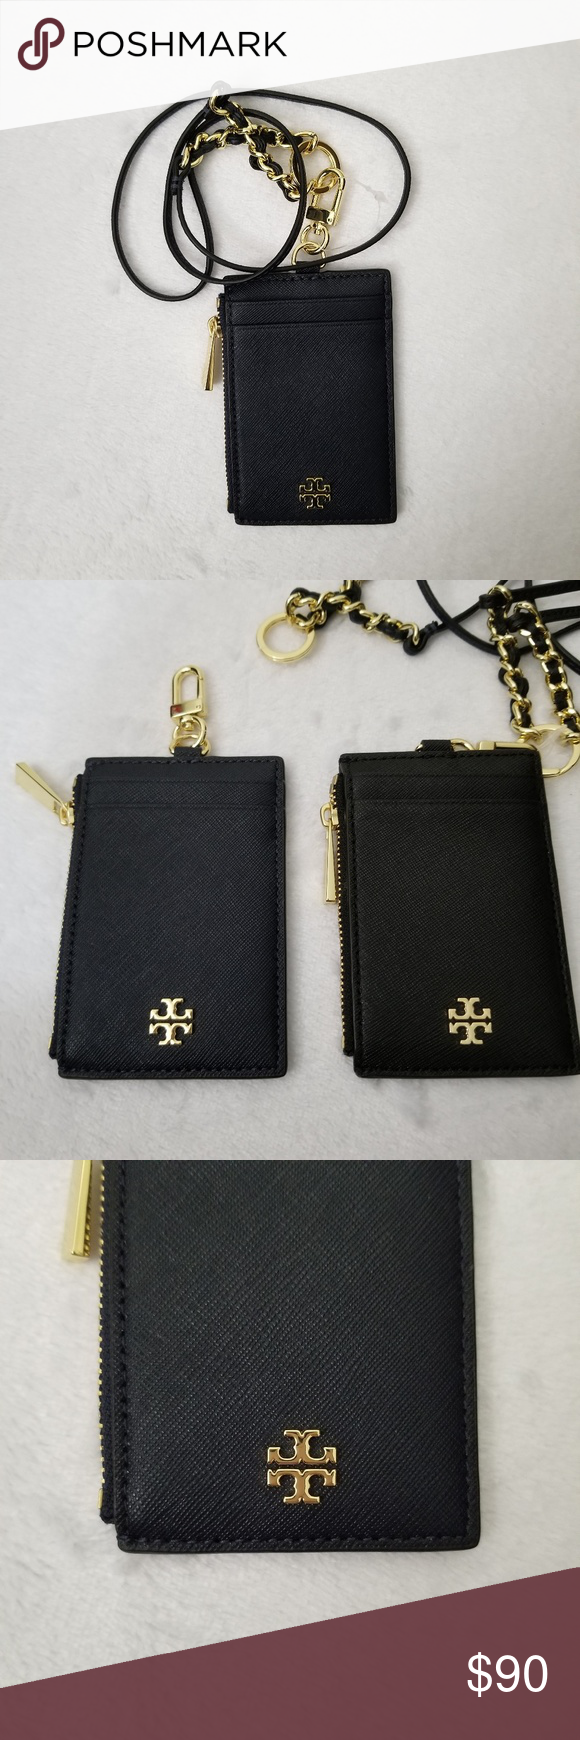 91cb765166c6 Tory Burch Emerson Lanyard ID Credit Card Holder 100% Authentic Guaranteed  Tory Navy with gold hardware 4 card slots with 1 zipper compartment  Removable ...